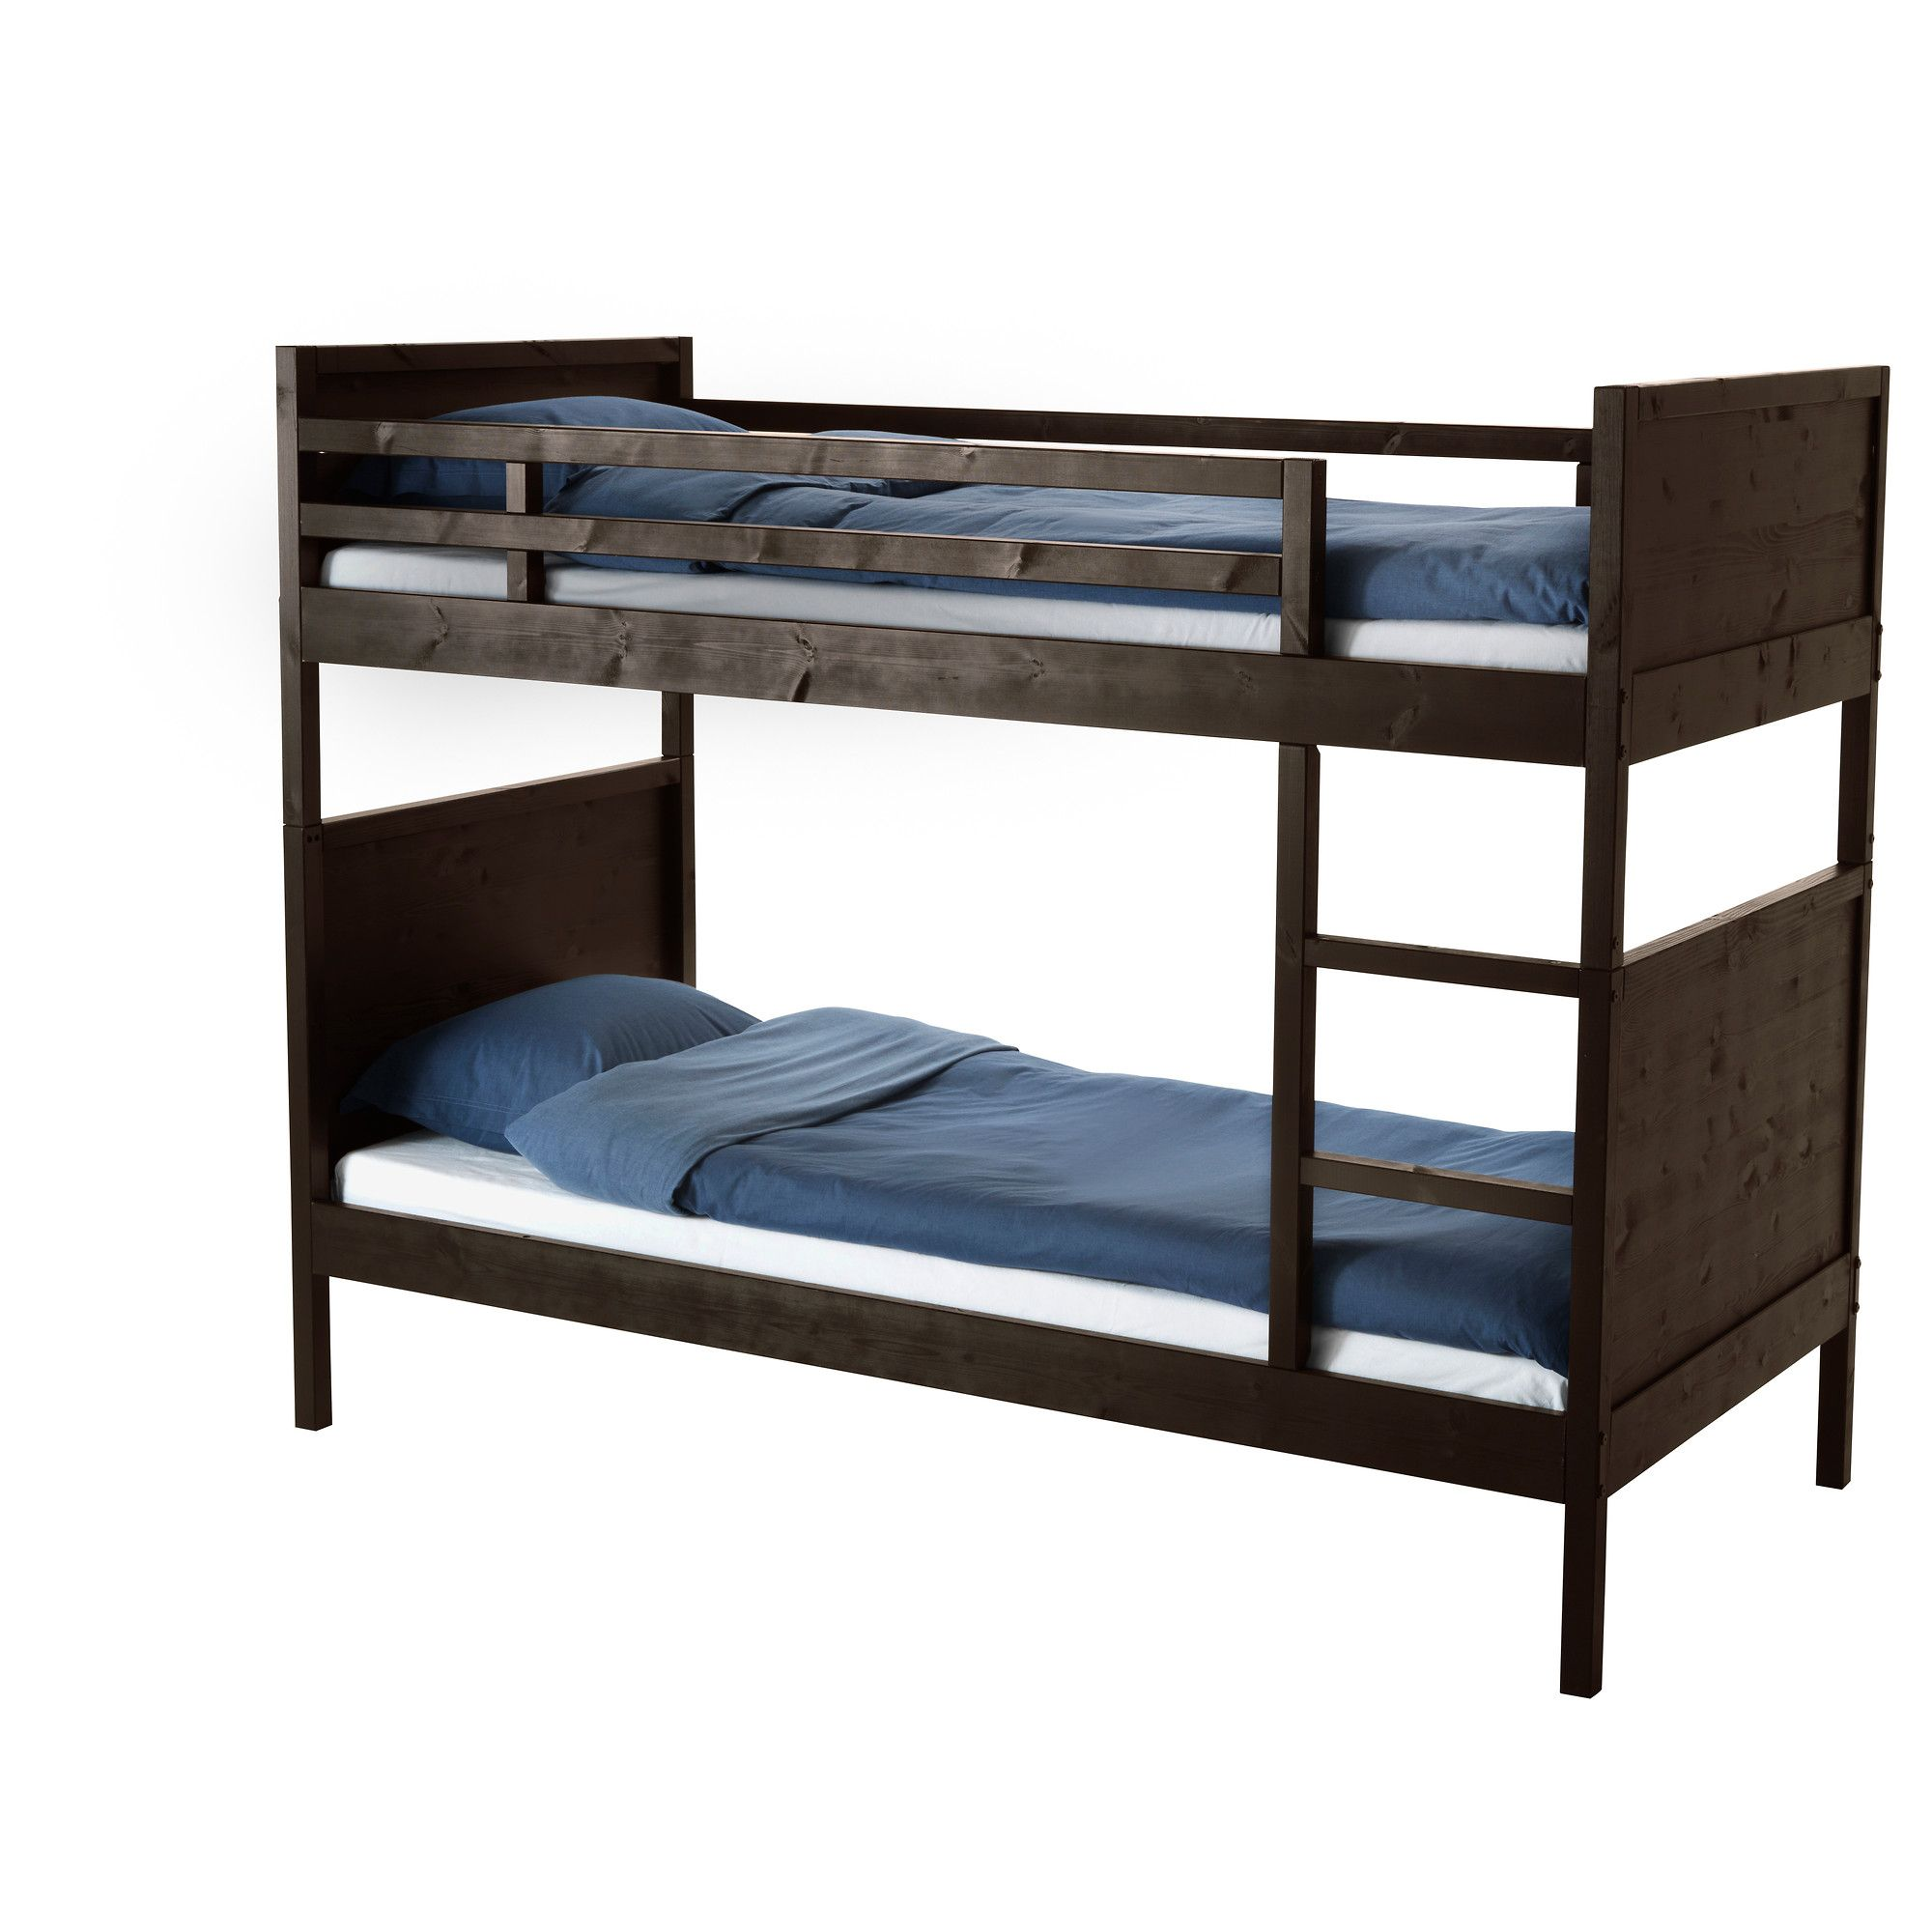 Ikea Us Furniture And Home Furnishings Modern Bunk Beds Ikea